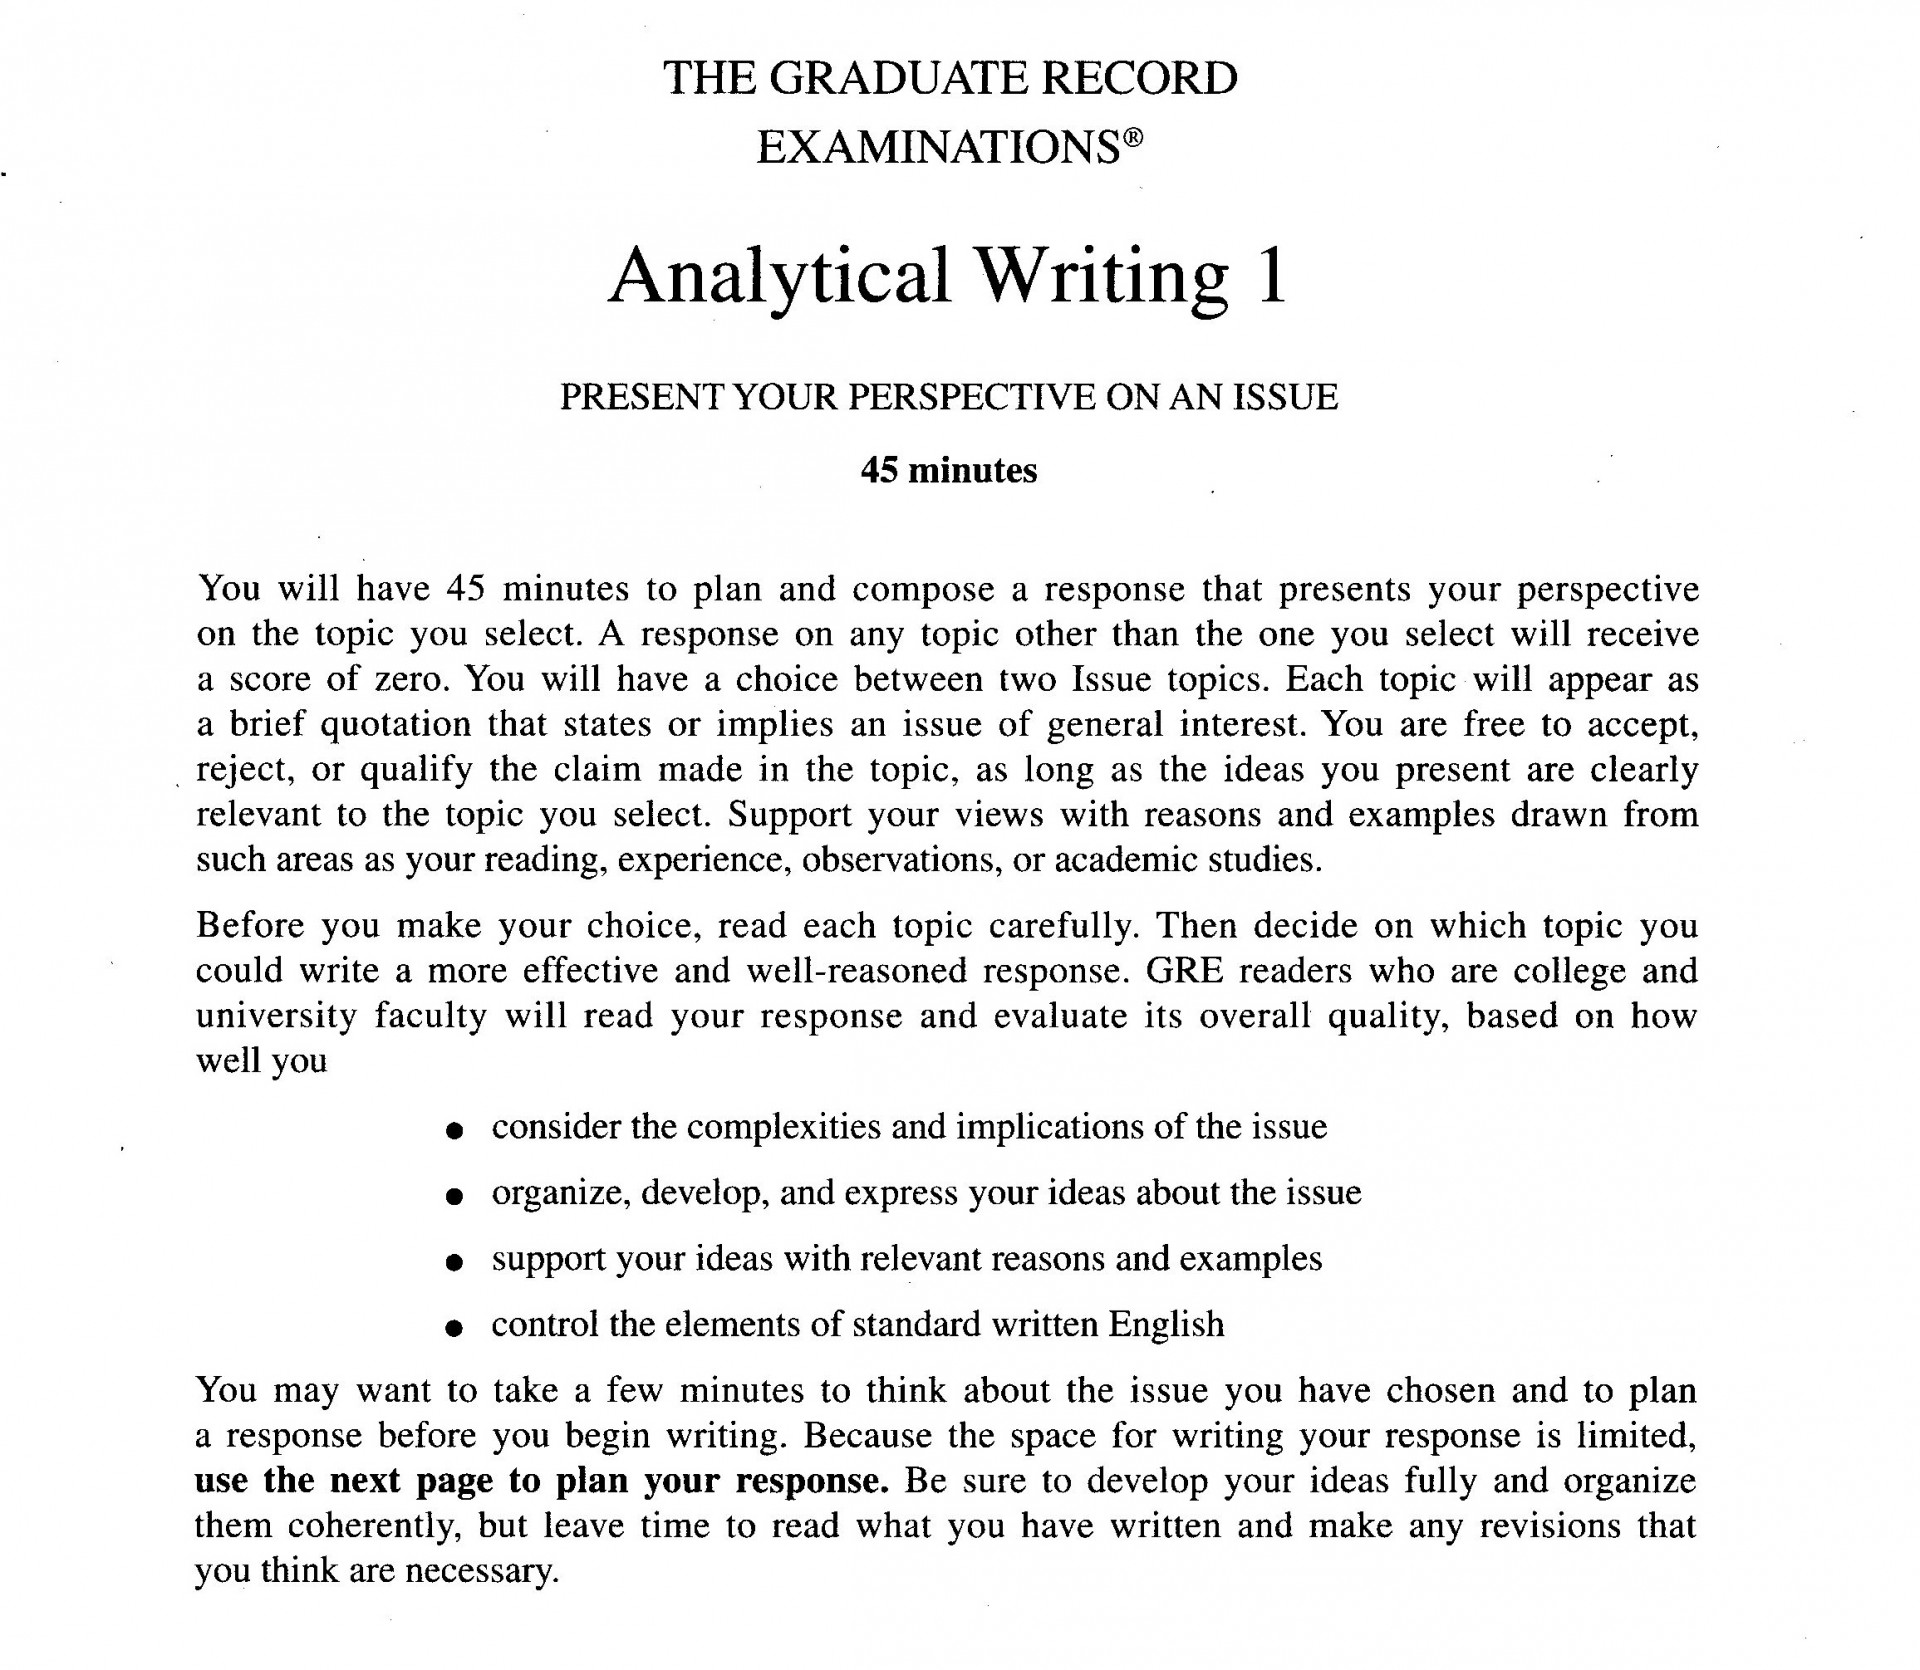 005 Gre Essay Prompts Example Analytical Writing Issue Task Directions Fantastic Topics Pool Pdf With Answers 1920